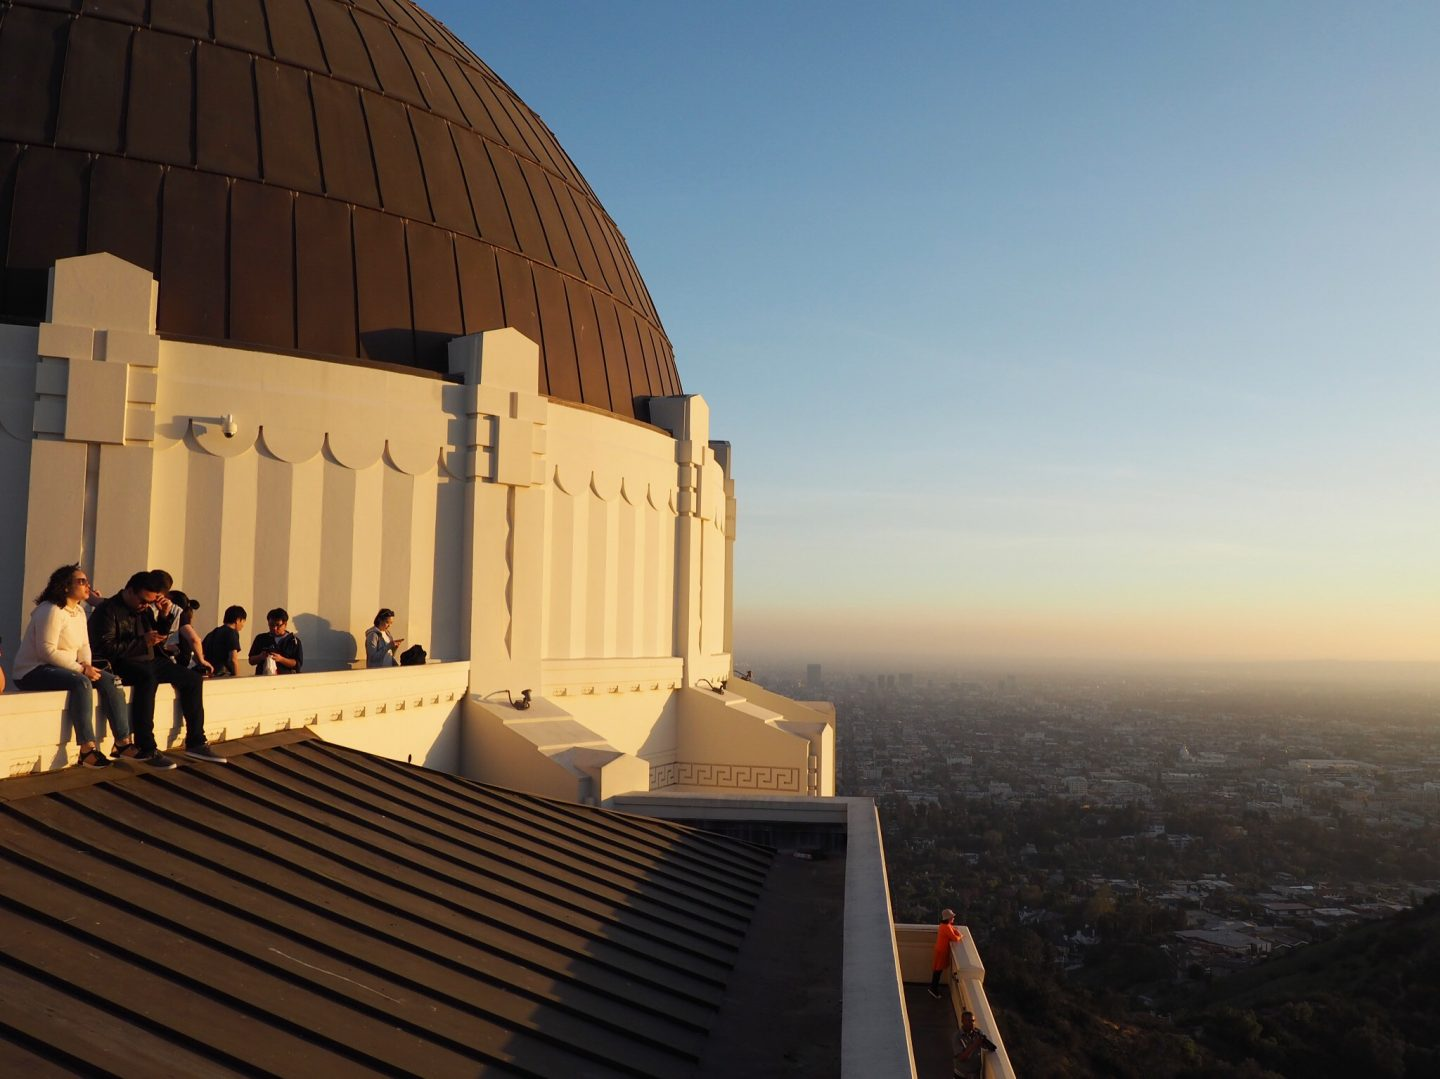 los angeles LA california travel sunset griffith observatory